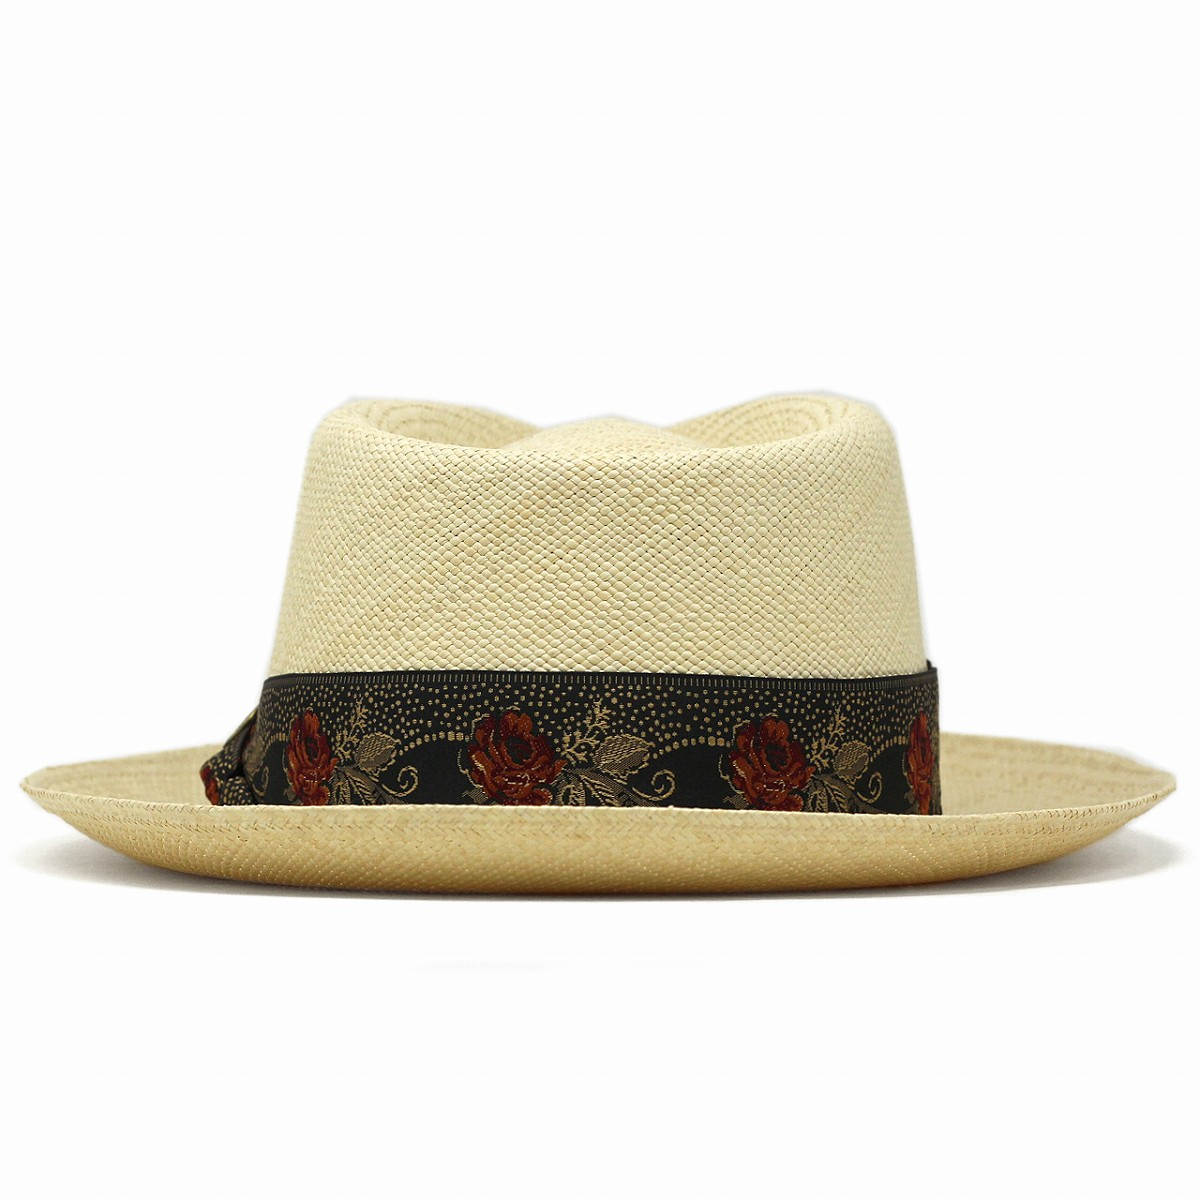 2fdaa291deac4 ... Panama hat STETSON rose embroidery ribbon overseas brand Stetson straw  hat men hat soft felt hat ...